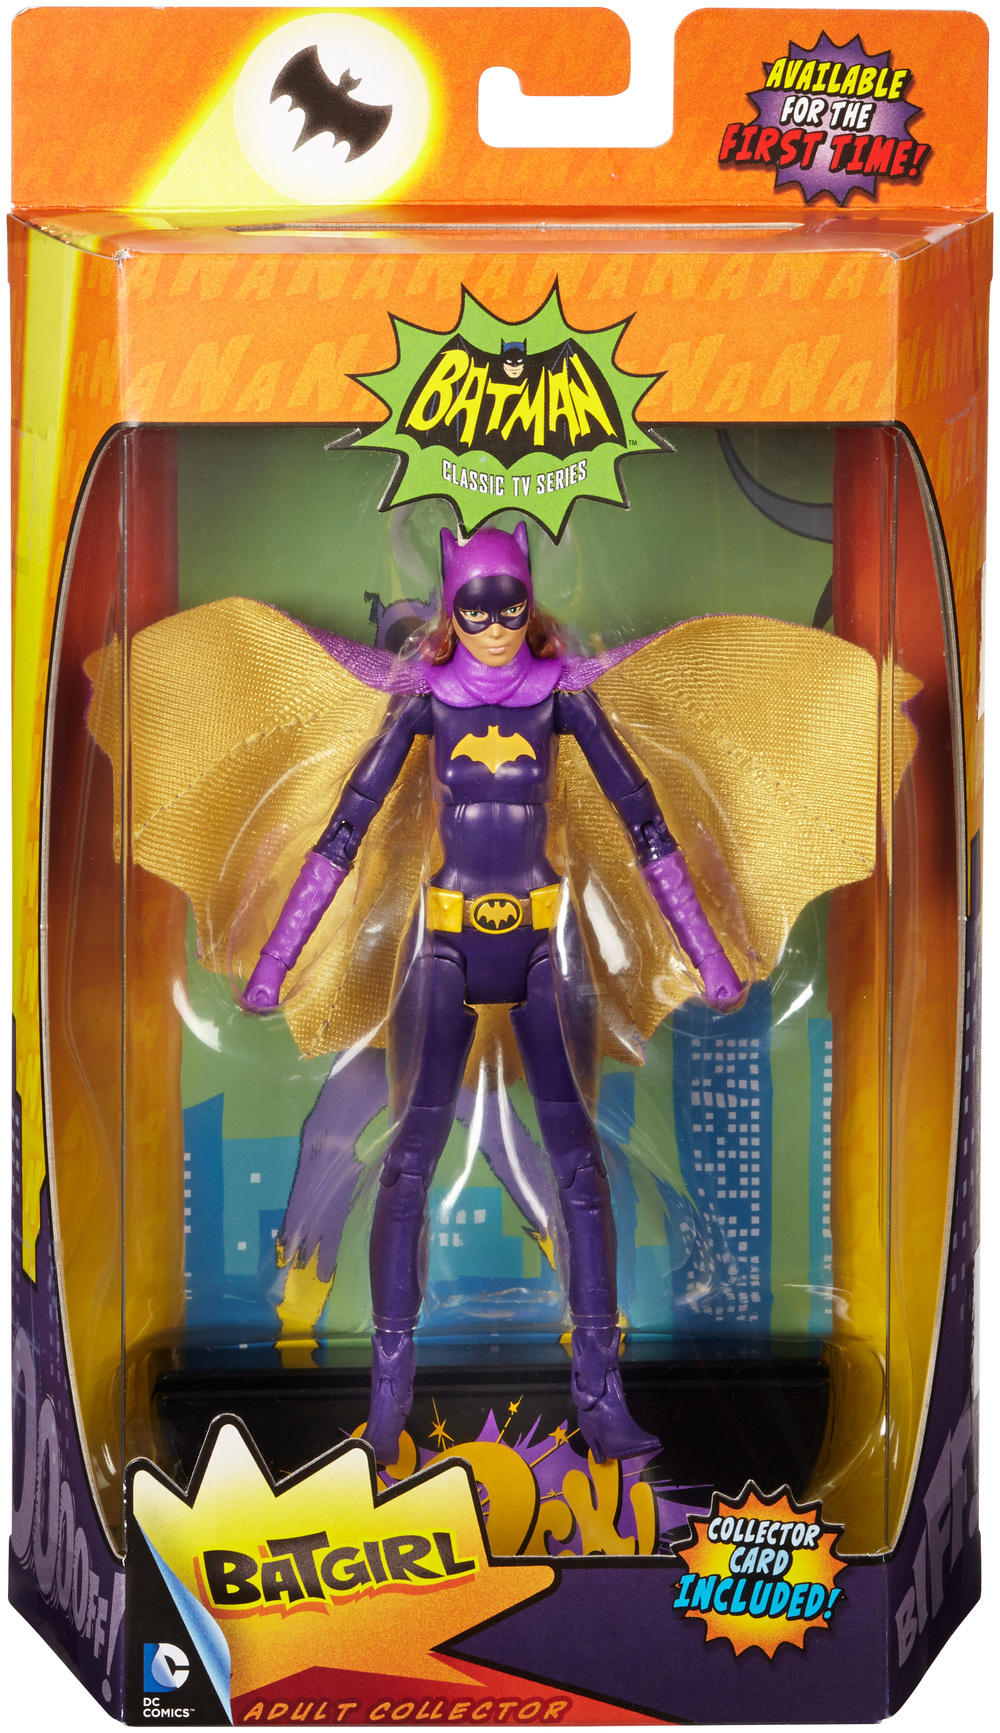 glittery-batgirl-action-figure-inspired-by-the-1966-batman-series